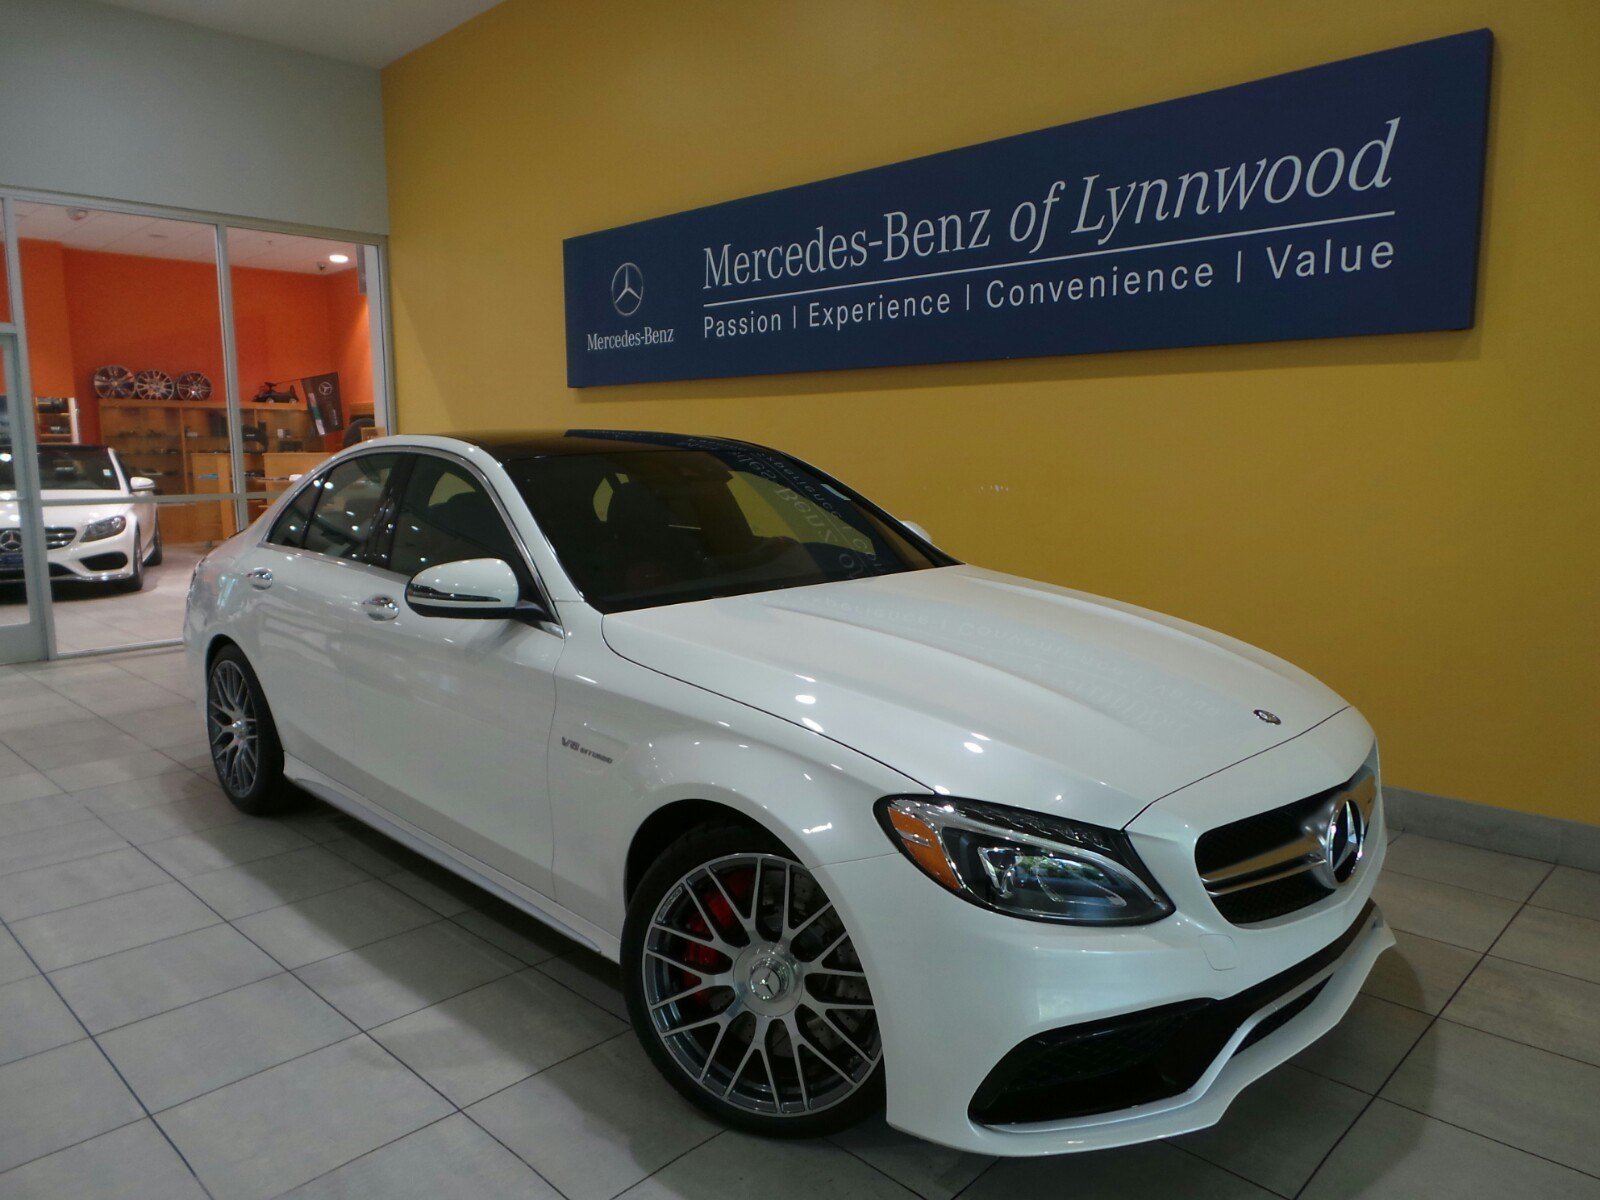 Pre owned 2017 mercedes benz c class amg c 63 s 4dr car for Pre owned mercedes benz s class